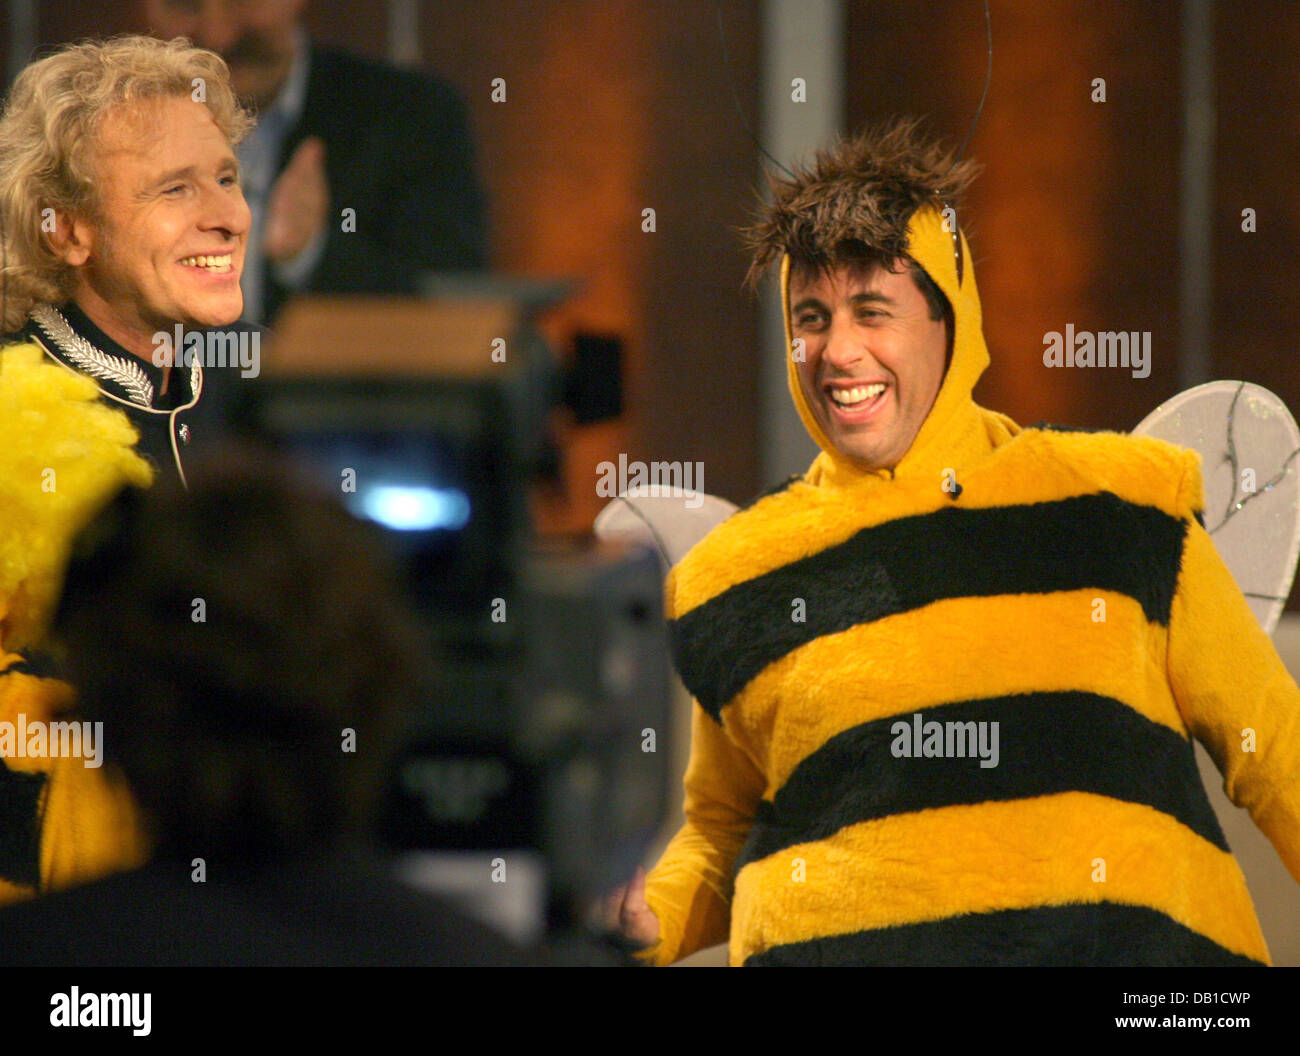 TV-show host Thomas Gottschalk is pictured with US-Comedian Jerry Seinfeld (R) wearing a beeu0027s costume during the ZDF TV show u0027Wetten dass....?u0027 in Graz ...  sc 1 st  Alamy & TV-show host Thomas Gottschalk is pictured with US-Comedian Jerry ...